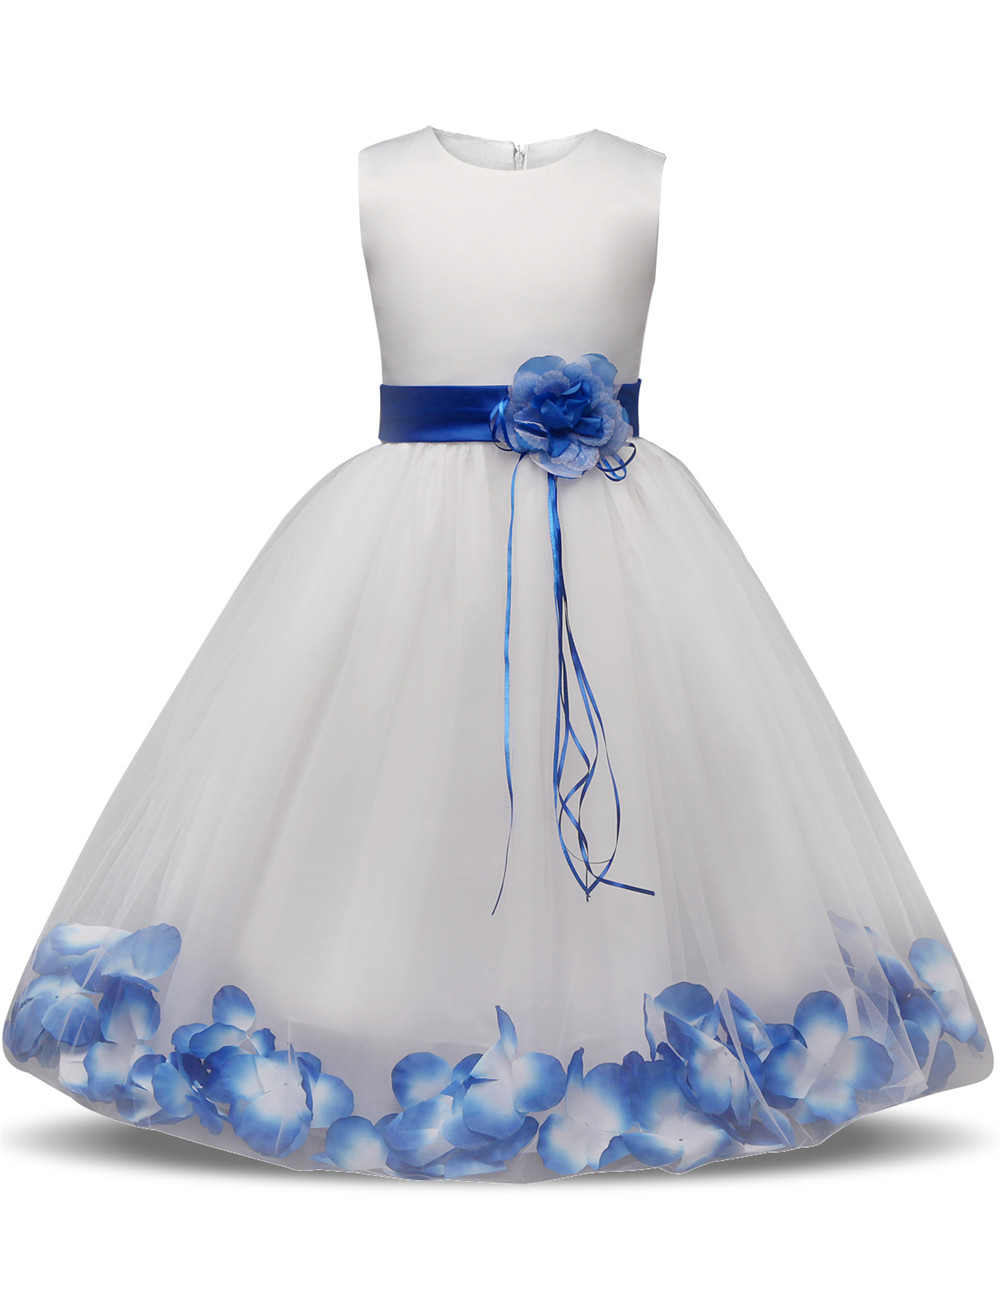 15e9fee85345e US $10.98 30% OFF|Flower Girl Baby Wedding Dress Fairy Petals Children's  Clothing Girl Party Dress Kids Clothes Fancy Teenage Girl Gown 4 6 8 10T-in  ...